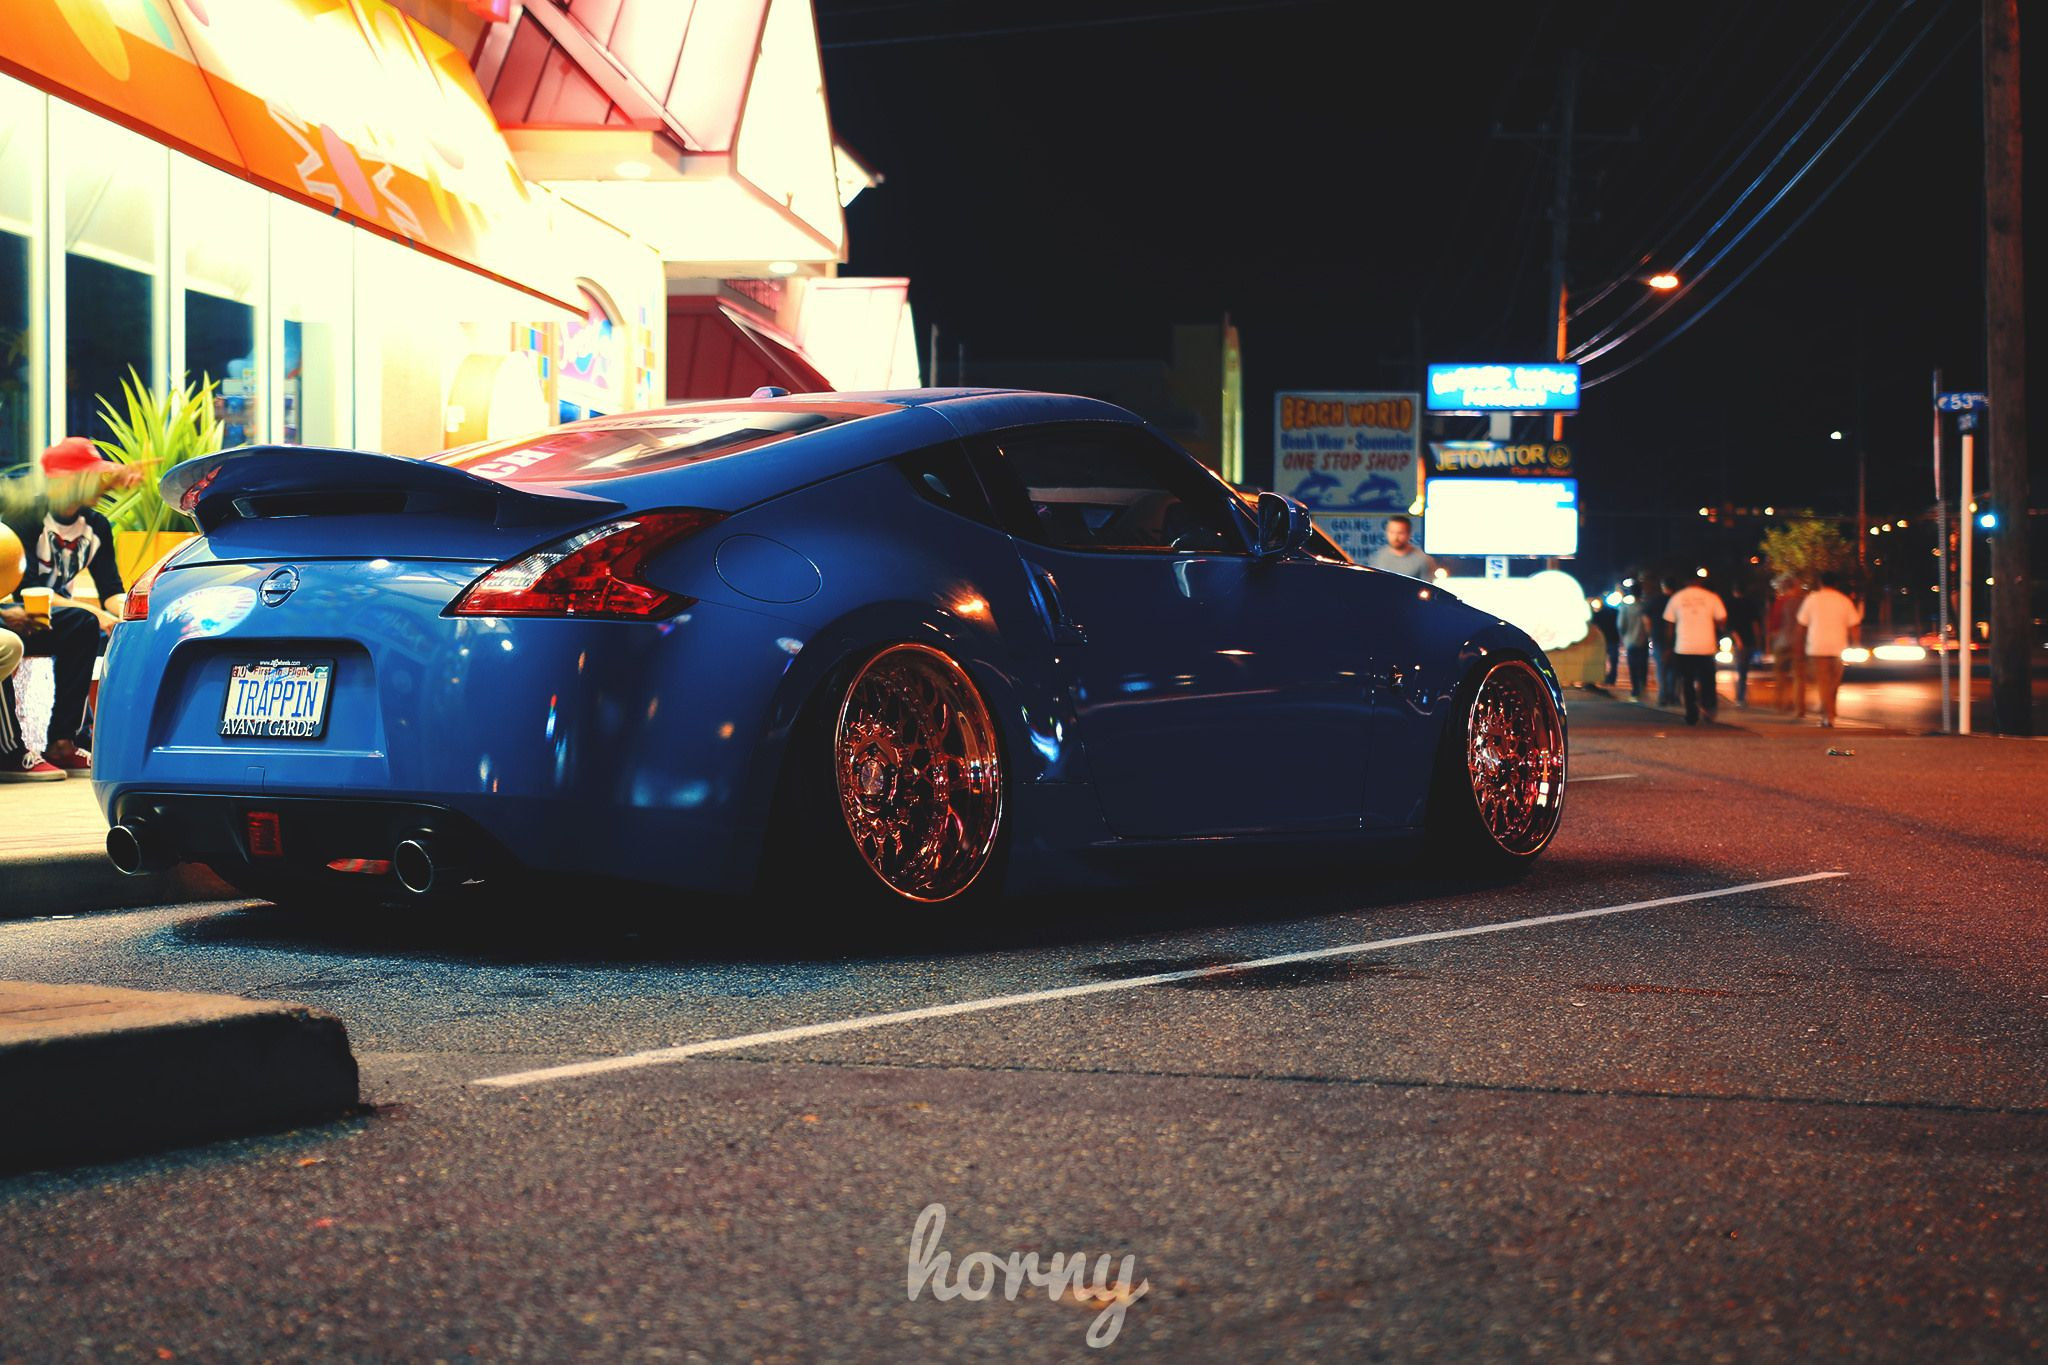 Beau Pic From Horny #Nissan #Nissan370Z #370Z #slammedjunction #bagged #cruise #